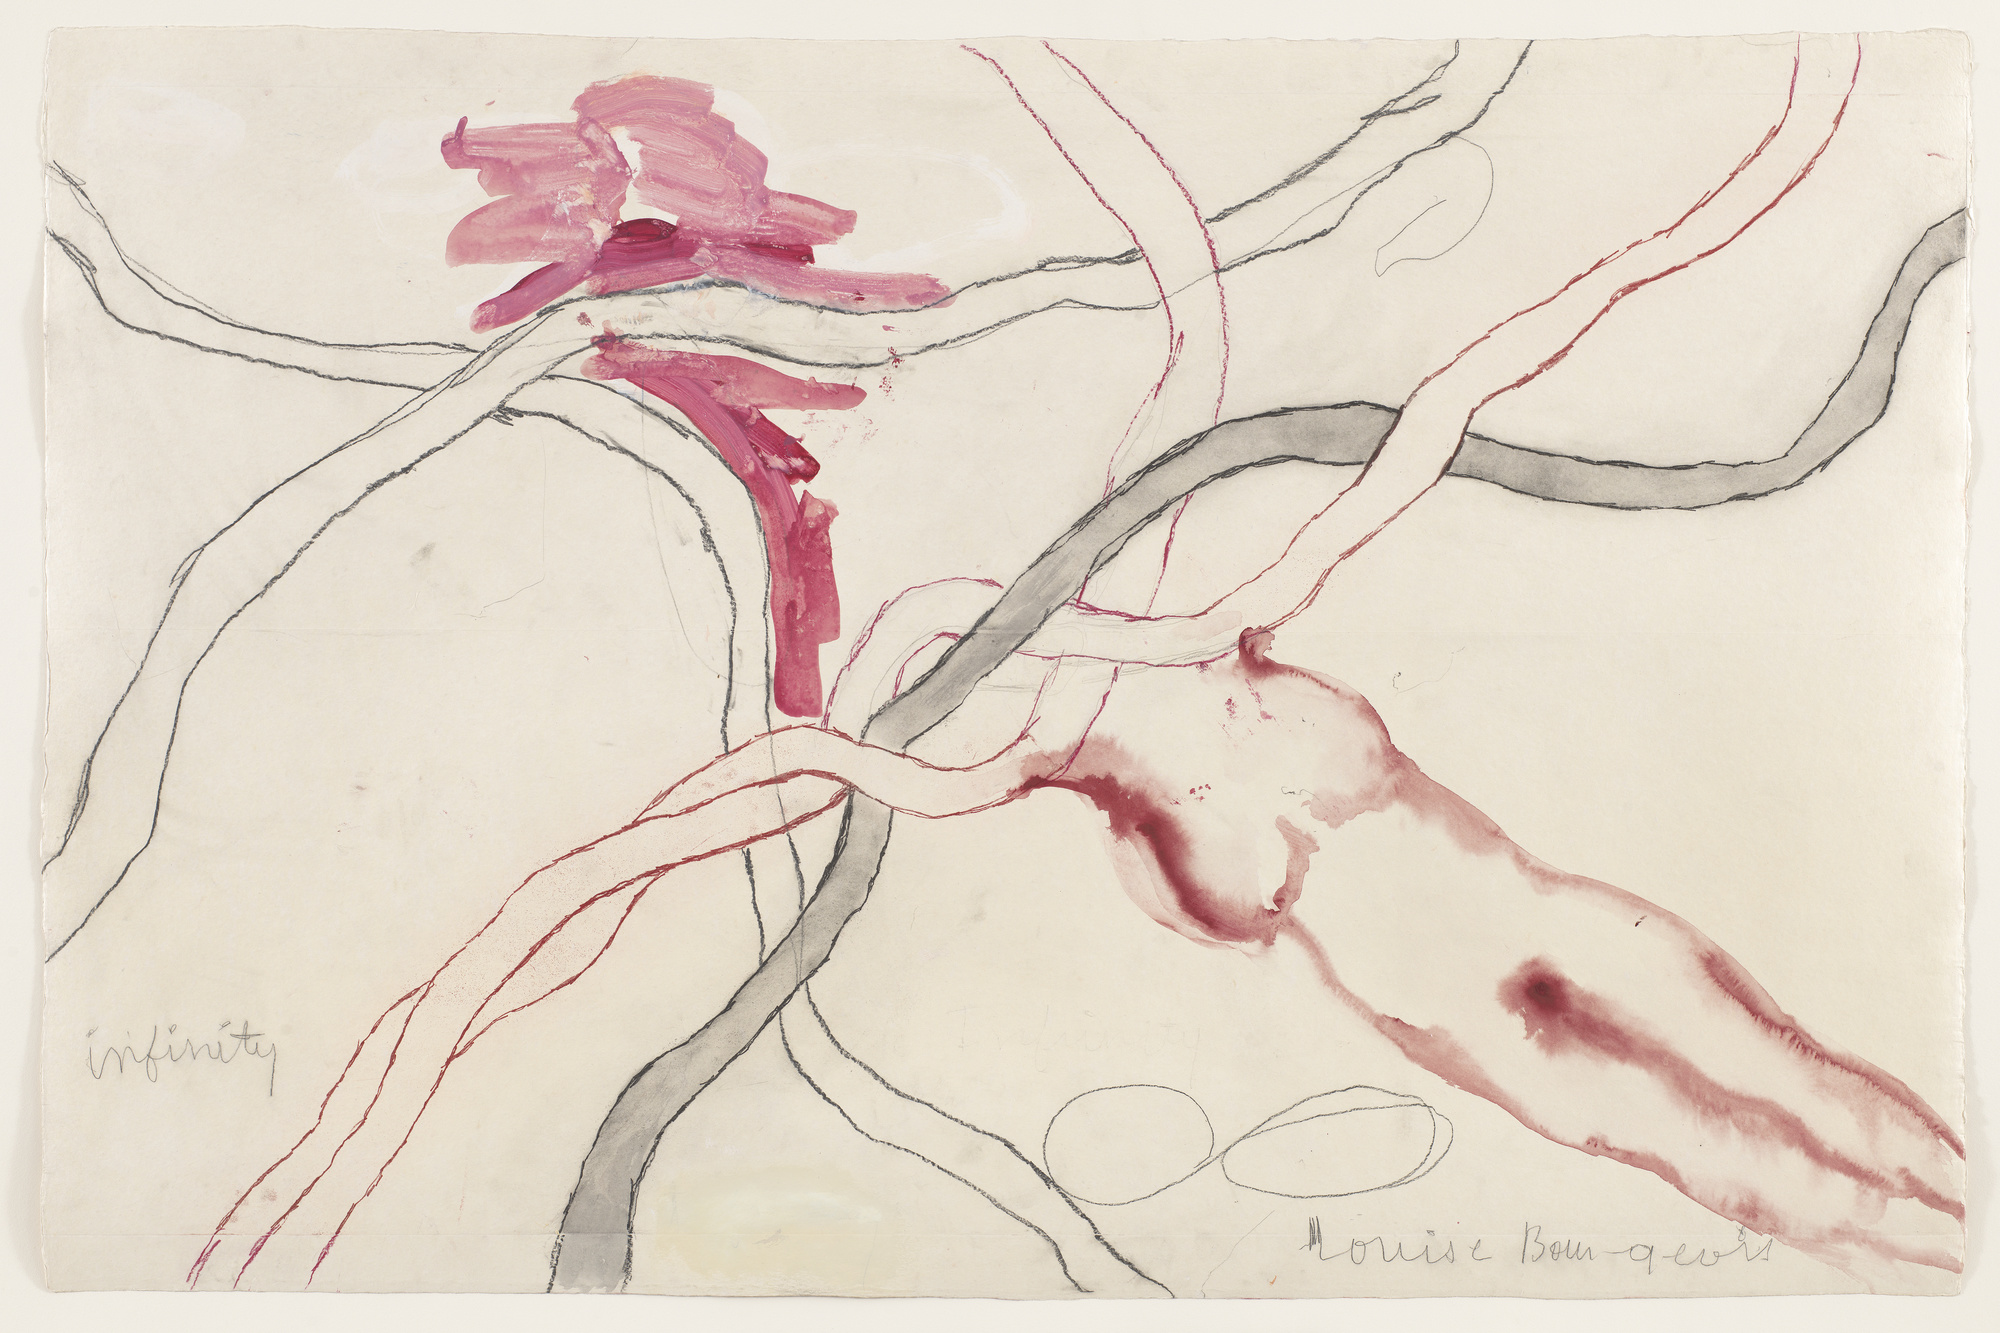 "Louise Bourgeois. No. 5 of 14 from the installation set À l'Infini. 2008. Soft ground etching, with selective wiping, watercolor, gouache, pencil, colored pencil, and watercolor wash additions, 40 x 60"" (101.6 x 152.4 cm). The Museum of Modern Art, New York. Purchased with funds provided by Agnes Gund, Marie-Josée and Henry R. Kravis, Marlene Hess and James D. Zirin, Maja Oeri and Hans Bodenmann, and Katherine Farley and Jerry Speyer, and Richard S. Zeisler Bequest (by exchange). © 2017 The Easton Foundation/Licensed by VAGA, NY"